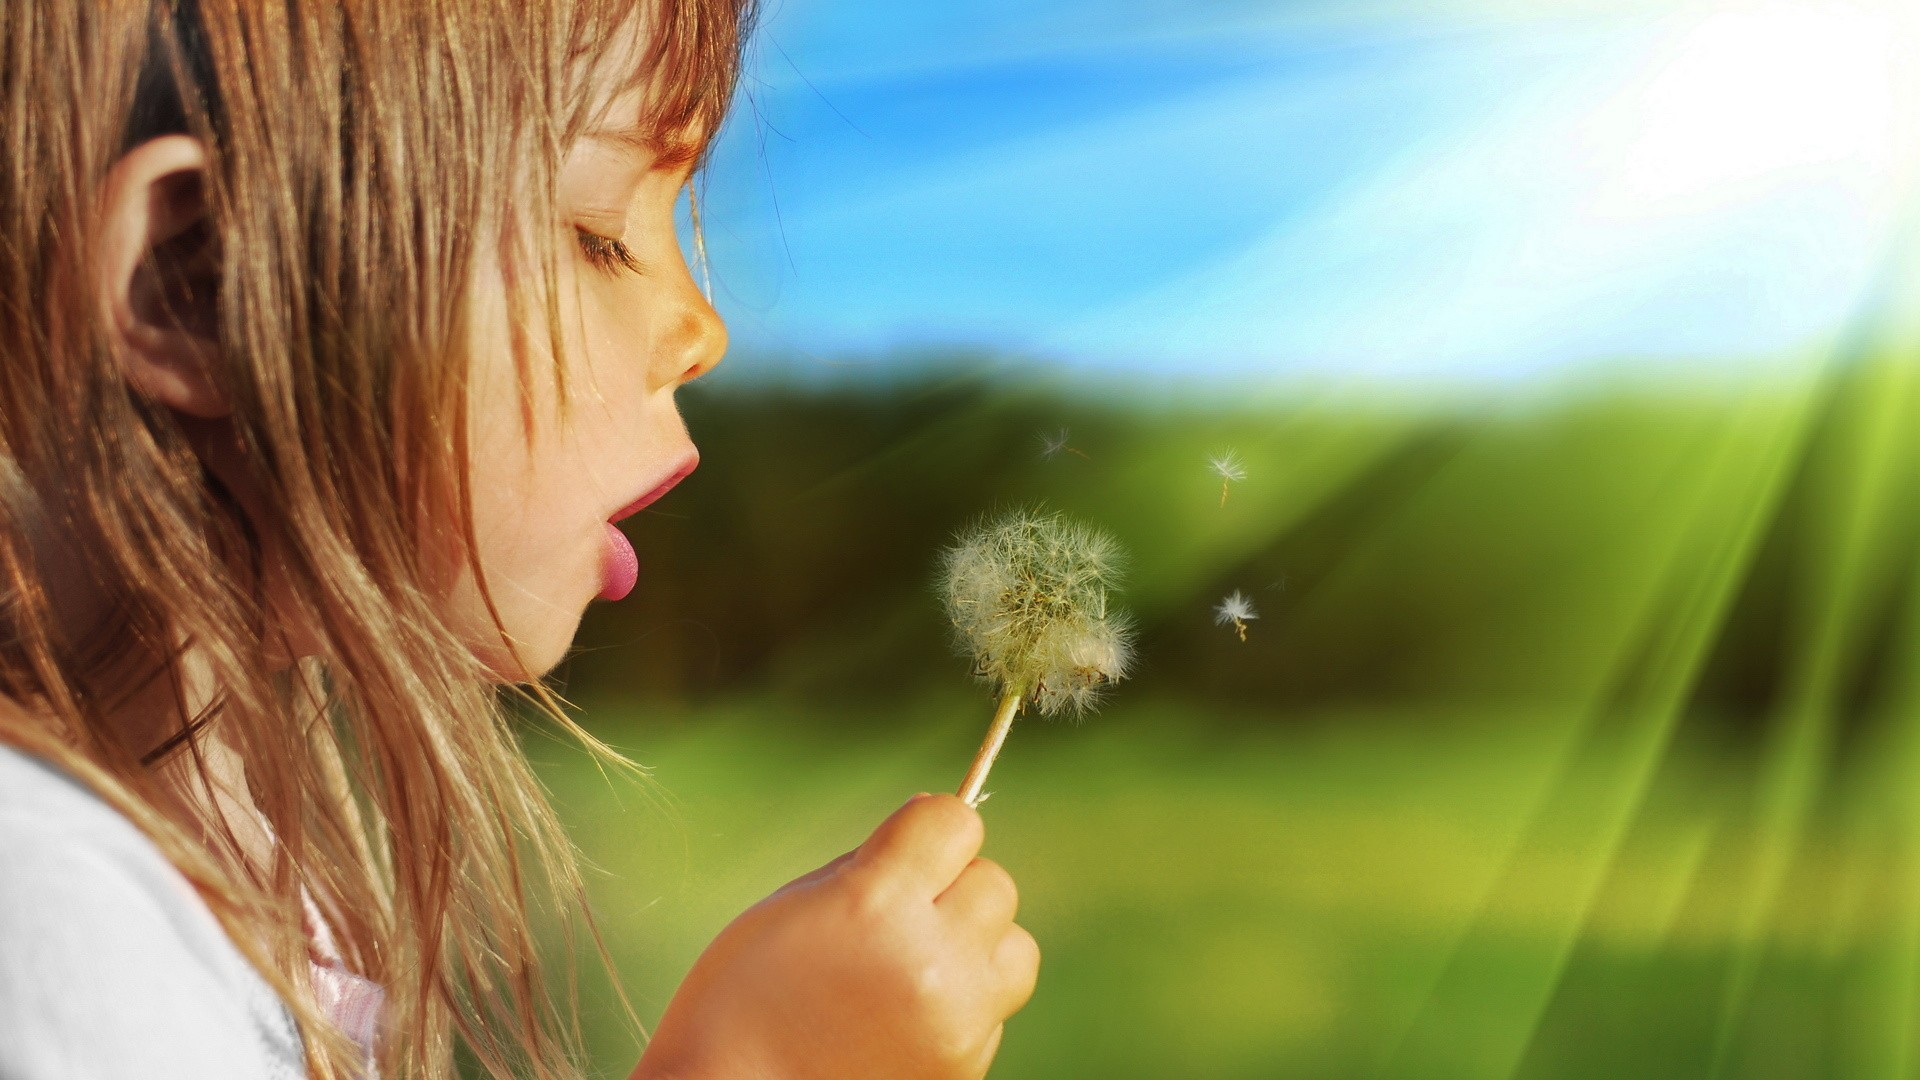 Res: 1920x1080, Girl blowing on a dandelion